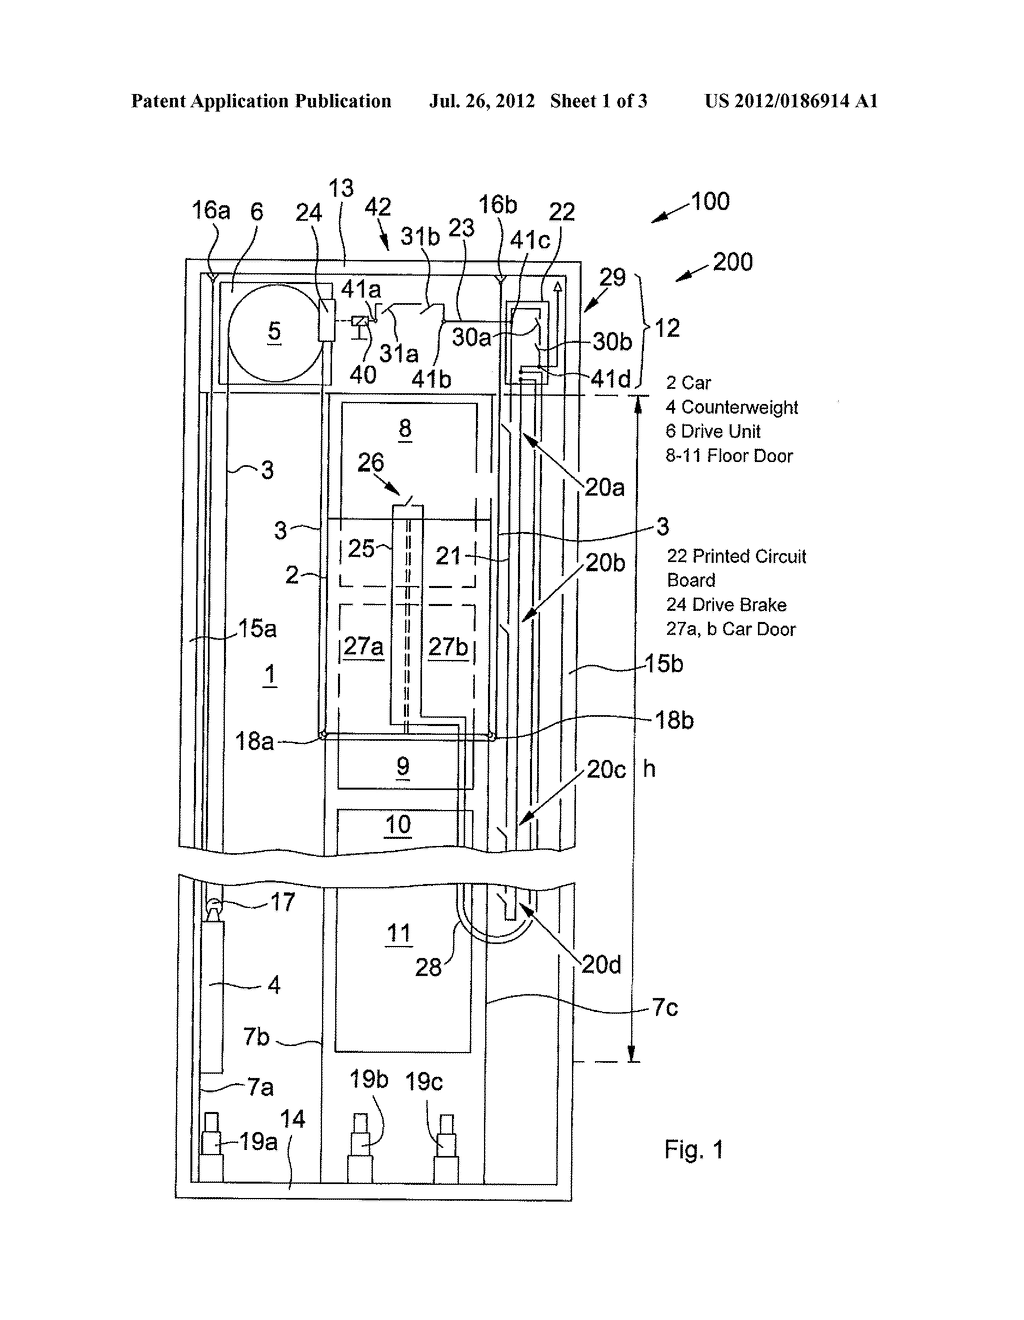 hight resolution of safety circuit in an elevator system diagram schematic and image 02 elevator circuit diagram elevator circuit diagram more